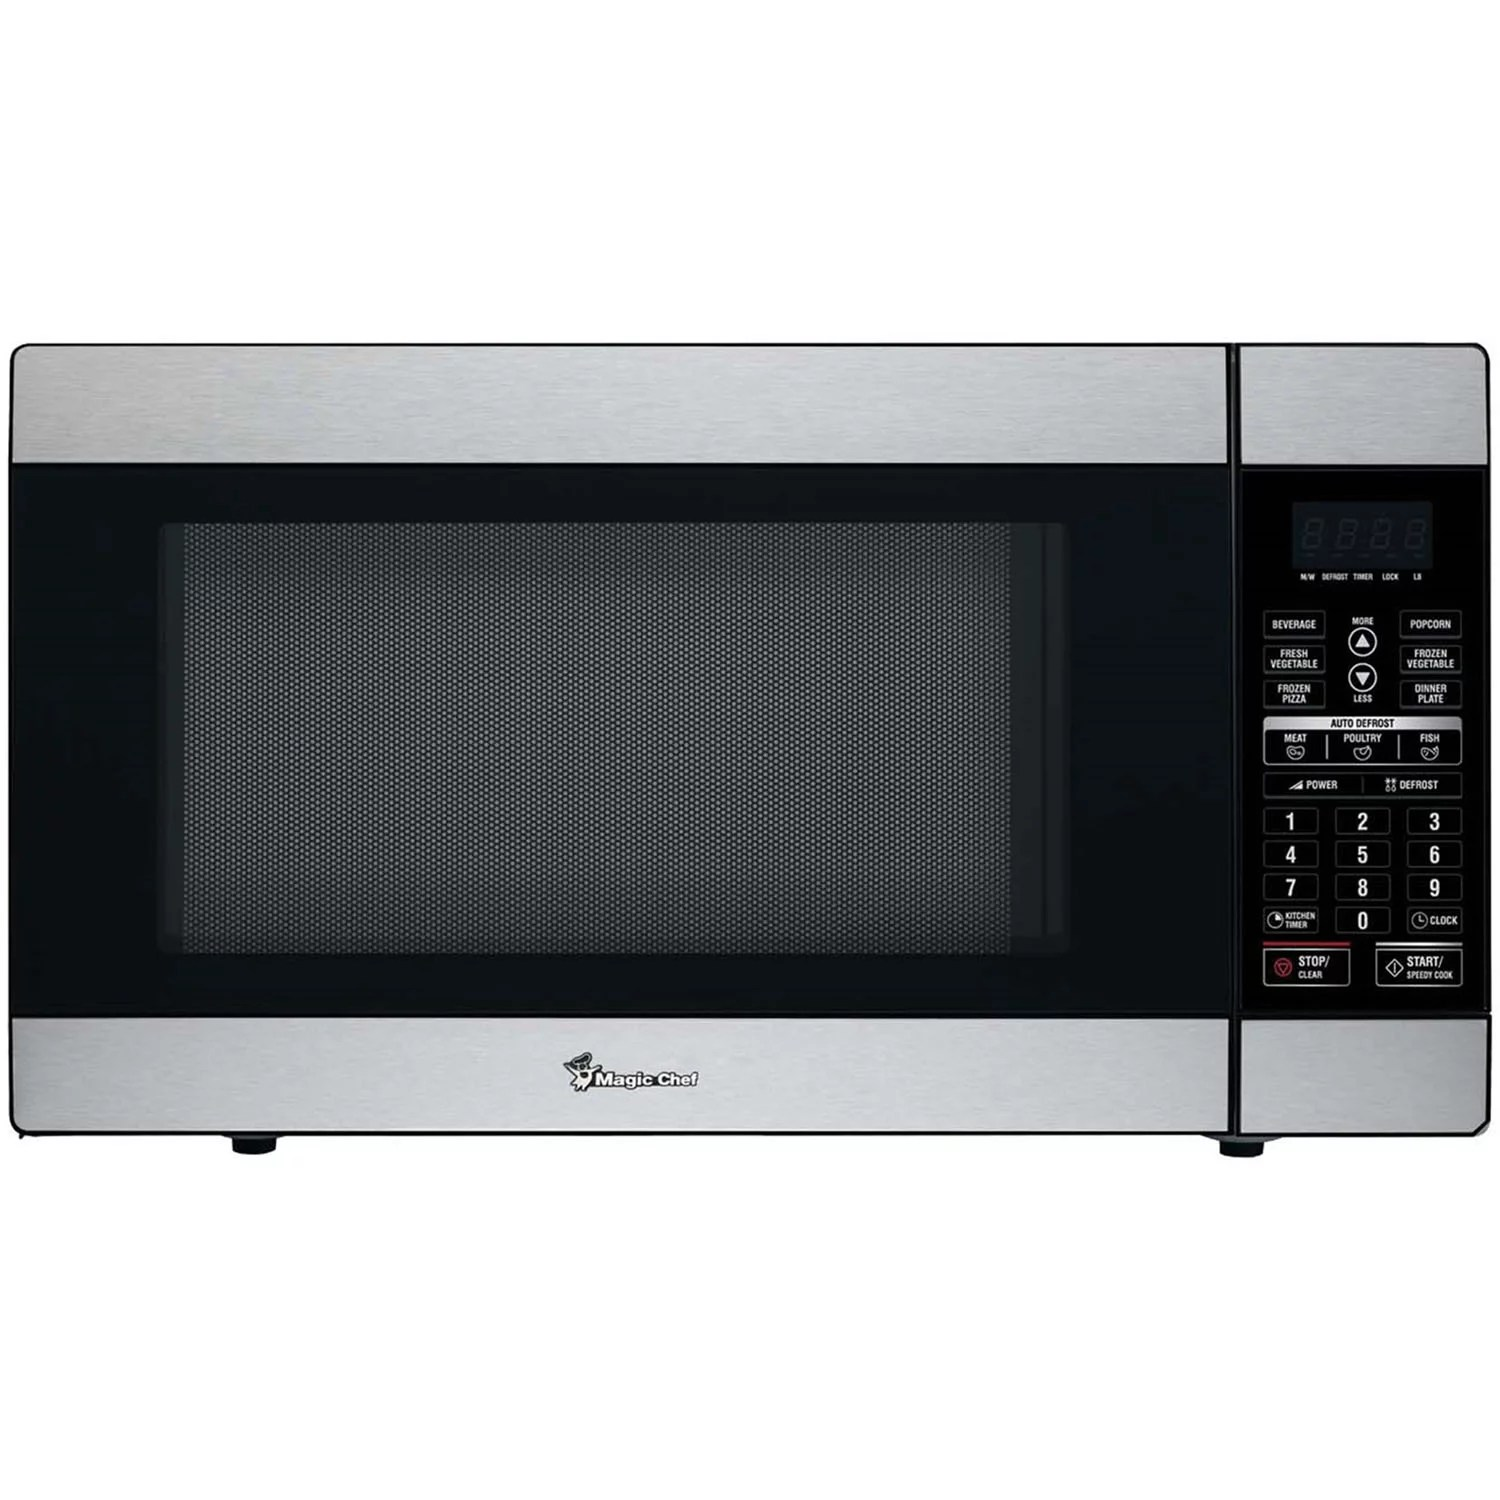 magic chef 1 8 cu ft 1100w countertop microwave oven in stainless steel walmart com